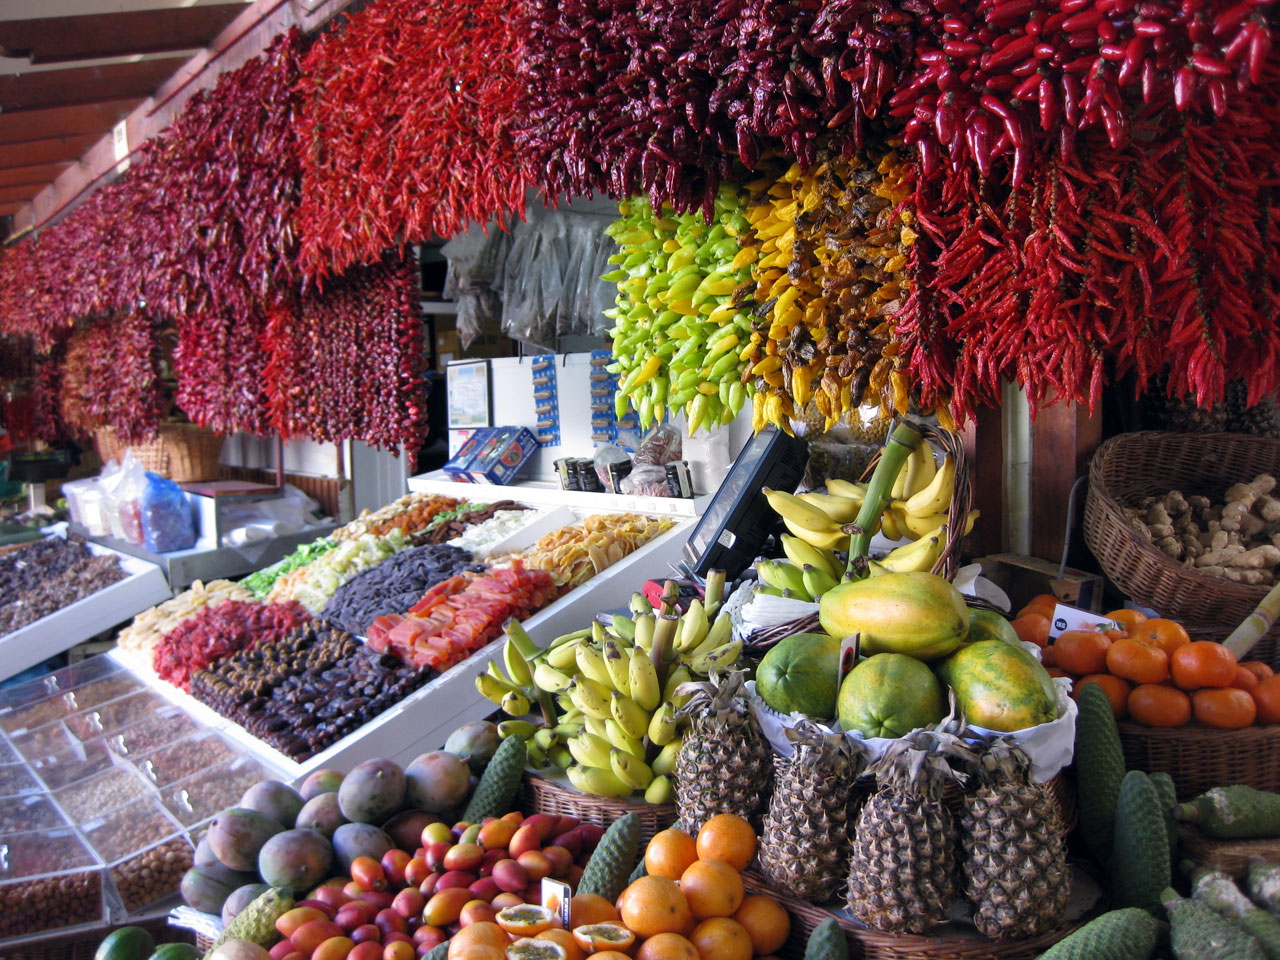 Fresh produce on display at the Mercado dos Lavradores, Funchal